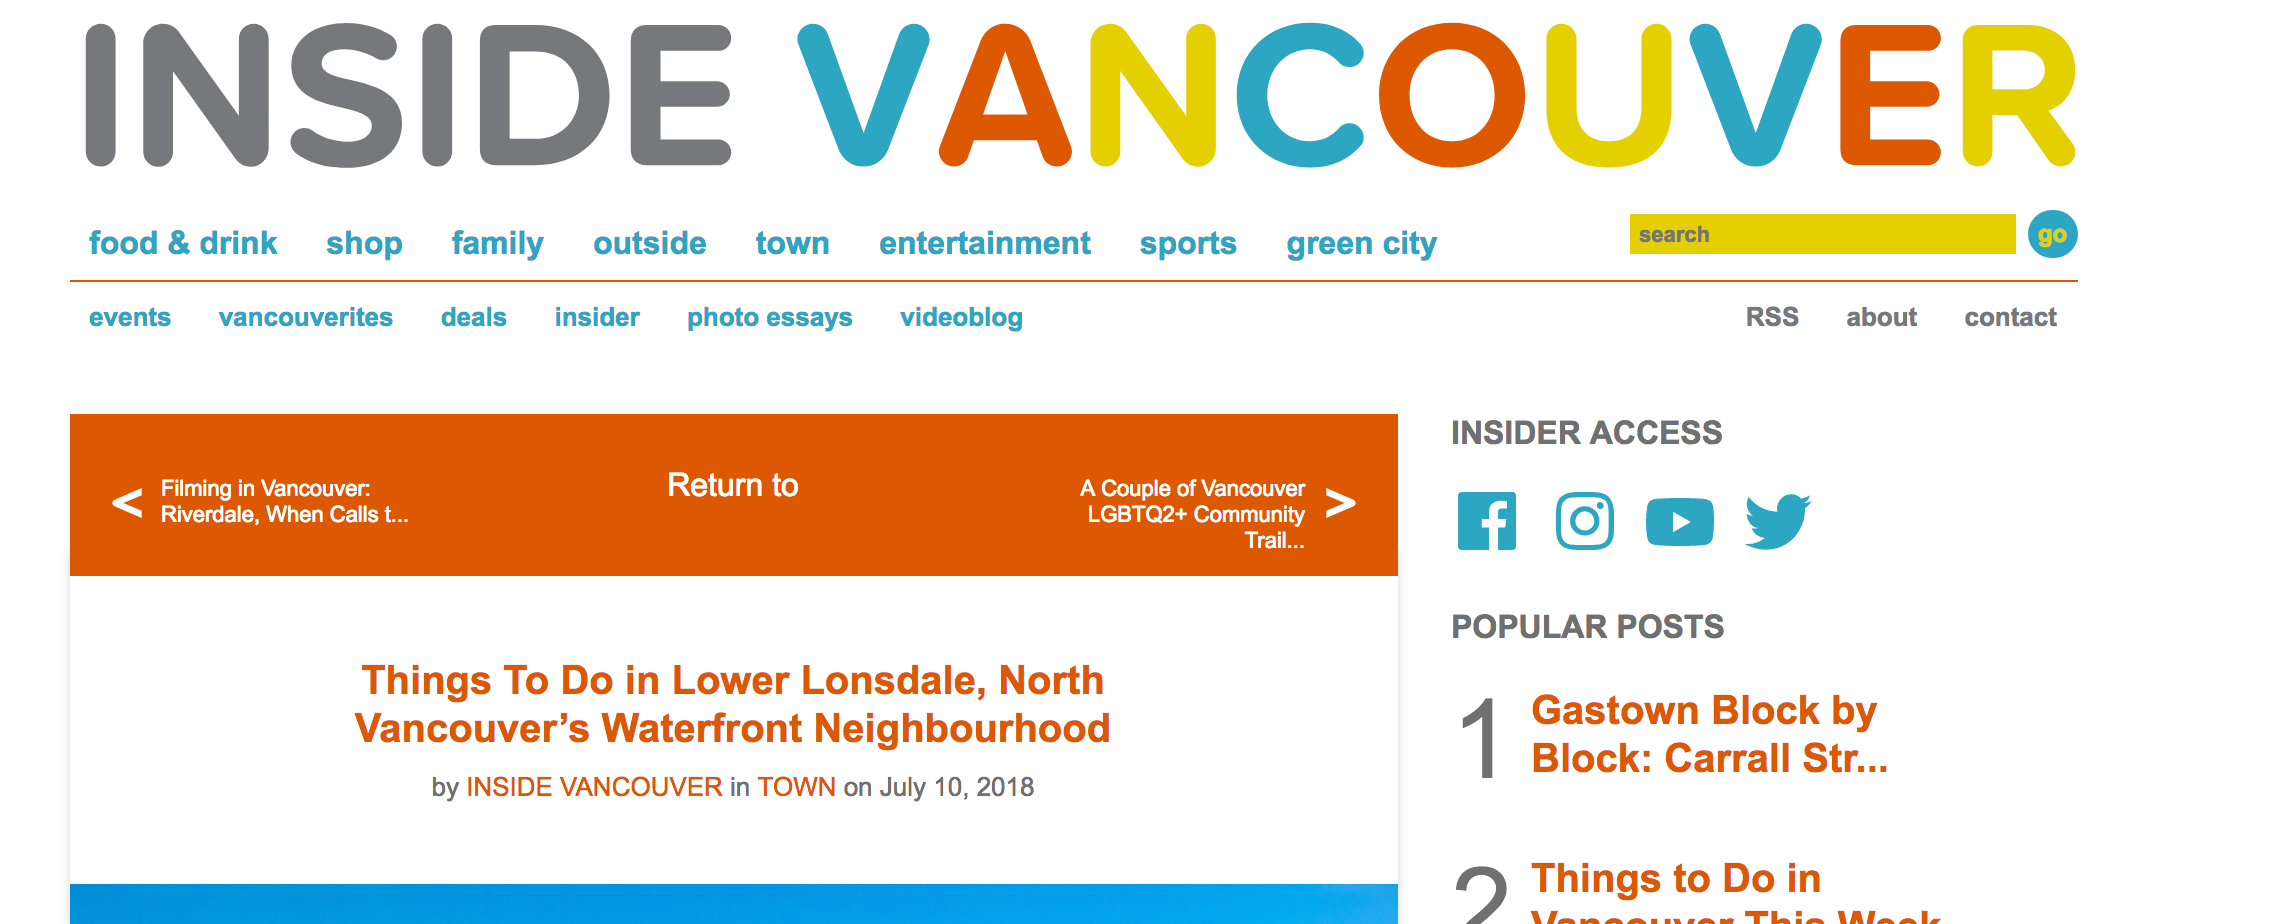 https://www.insidevancouver.ca/2018/07/10/things-to-do-in-lower-lonsdale-north-vancouvers-waterfront-neighbourhood/